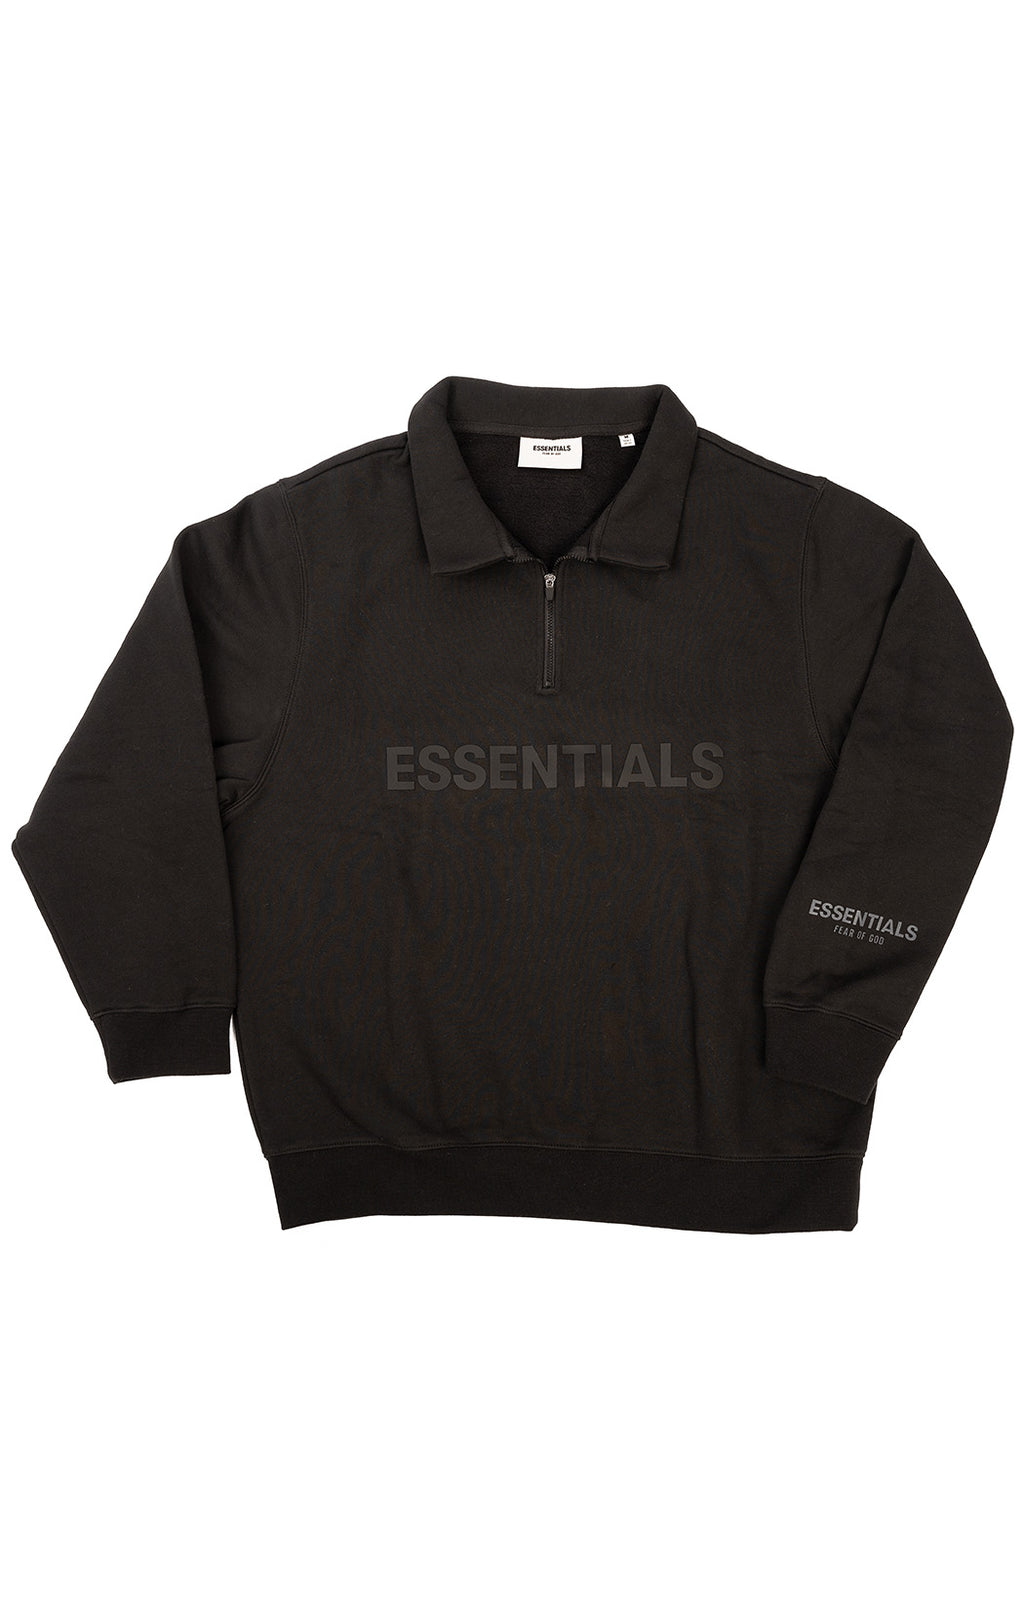 FEAR OF GOD ESSENTIALS  Sweatshirt  Size: Medium